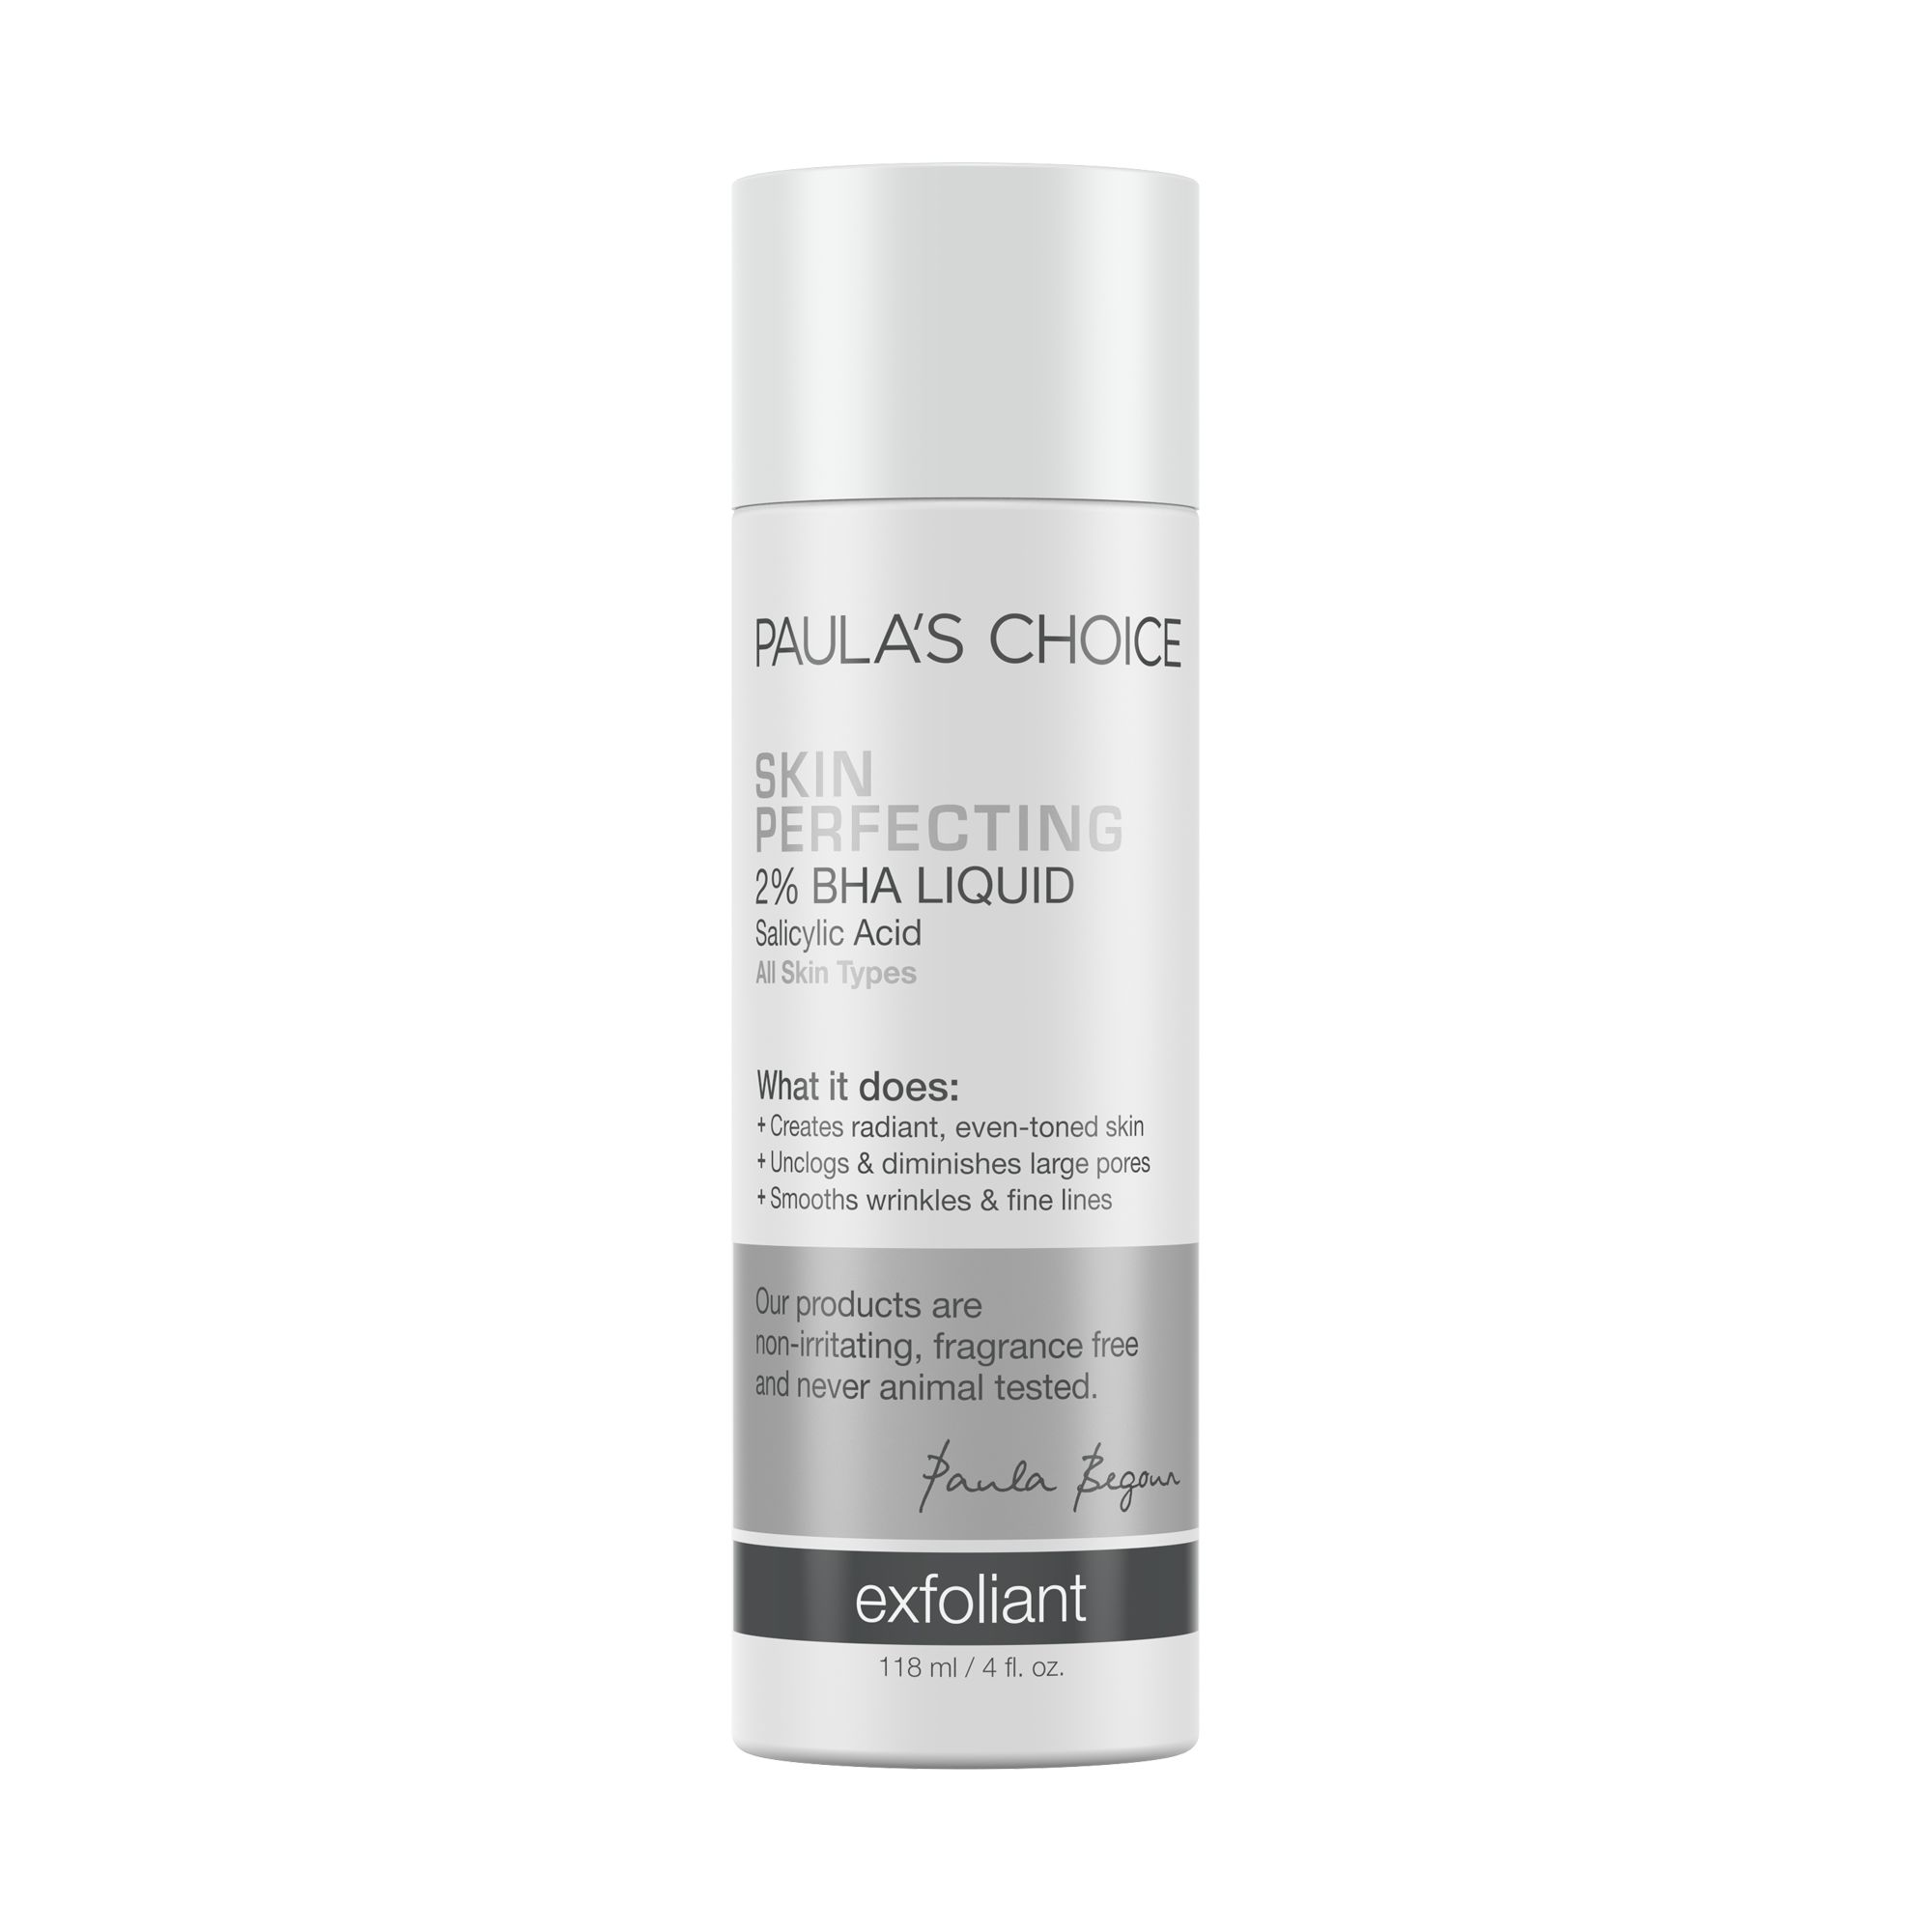 [ลด 20%] Paula's Choice : Skin Perfecting 2% BHA Liquid Exfoliant 118ml